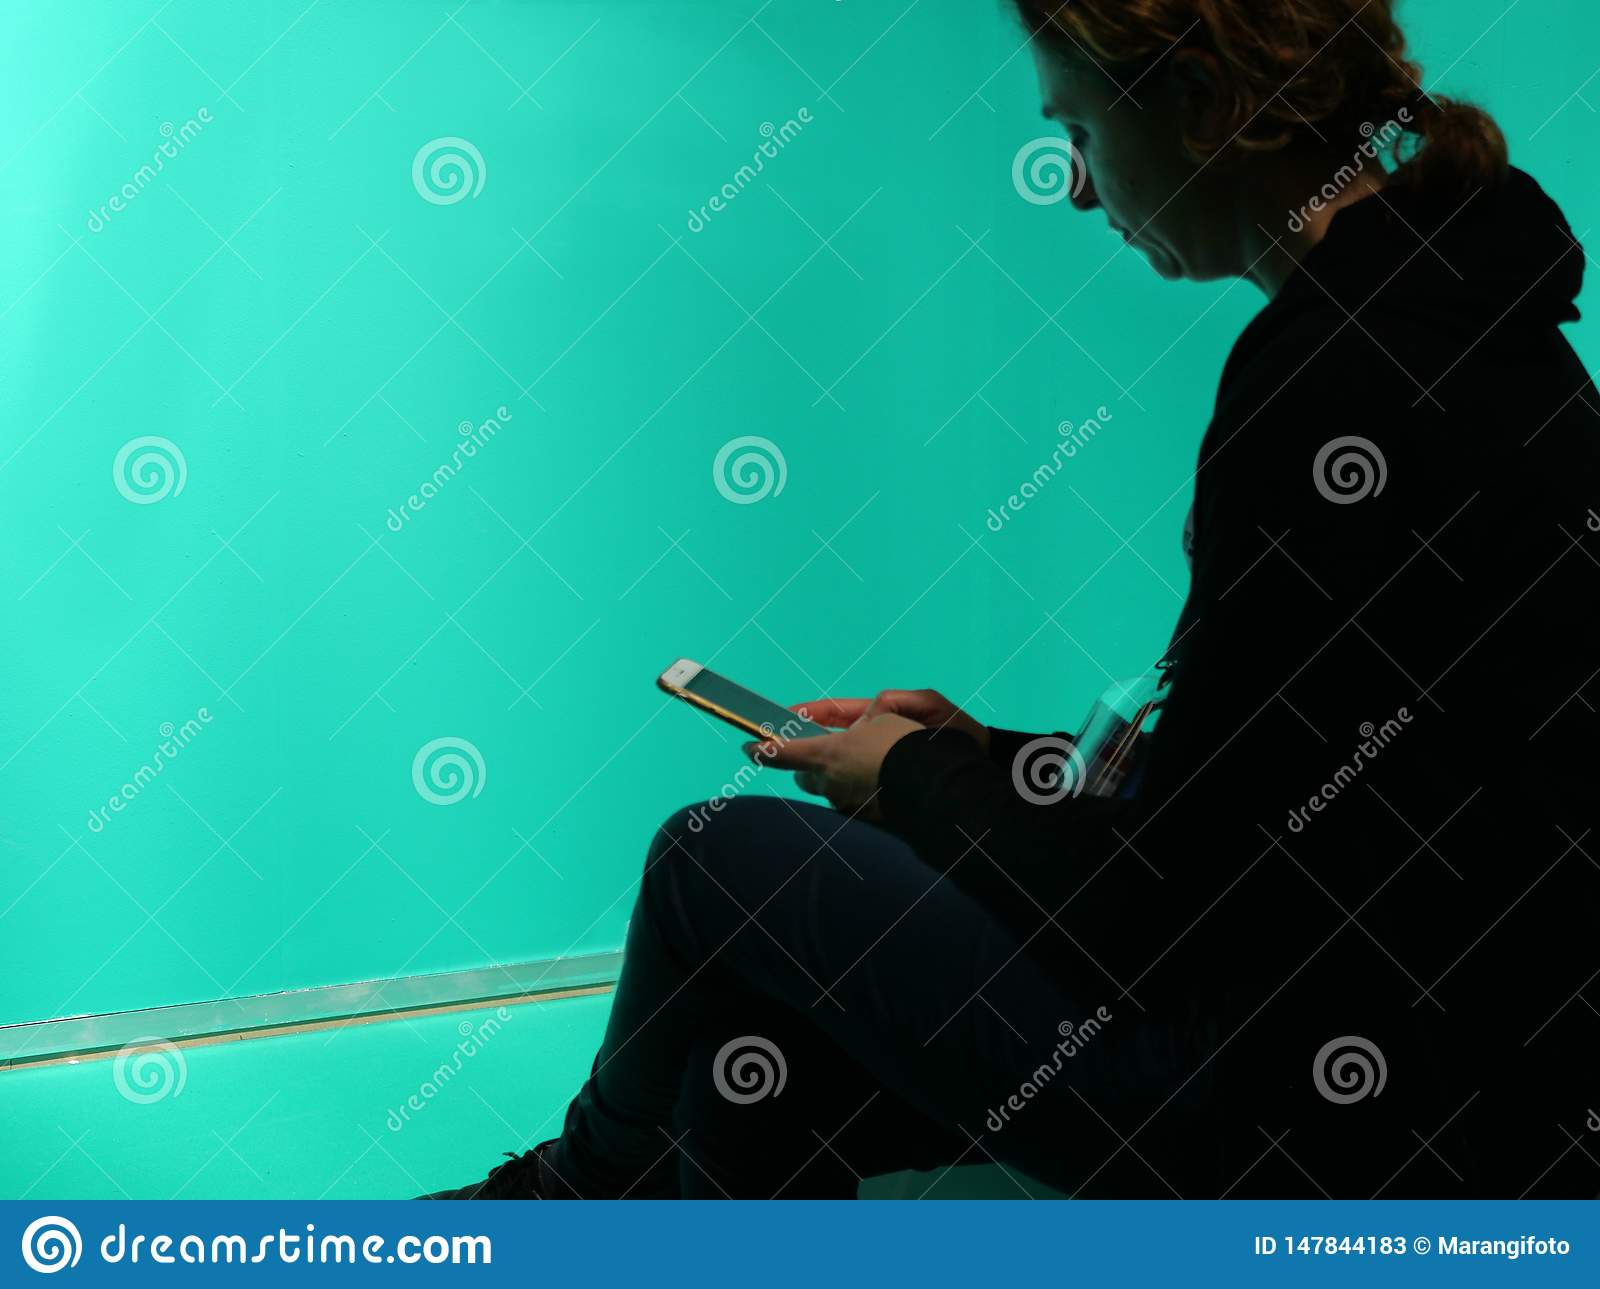 Lonely woman silhouette watching her smartphone isolated on blank green background